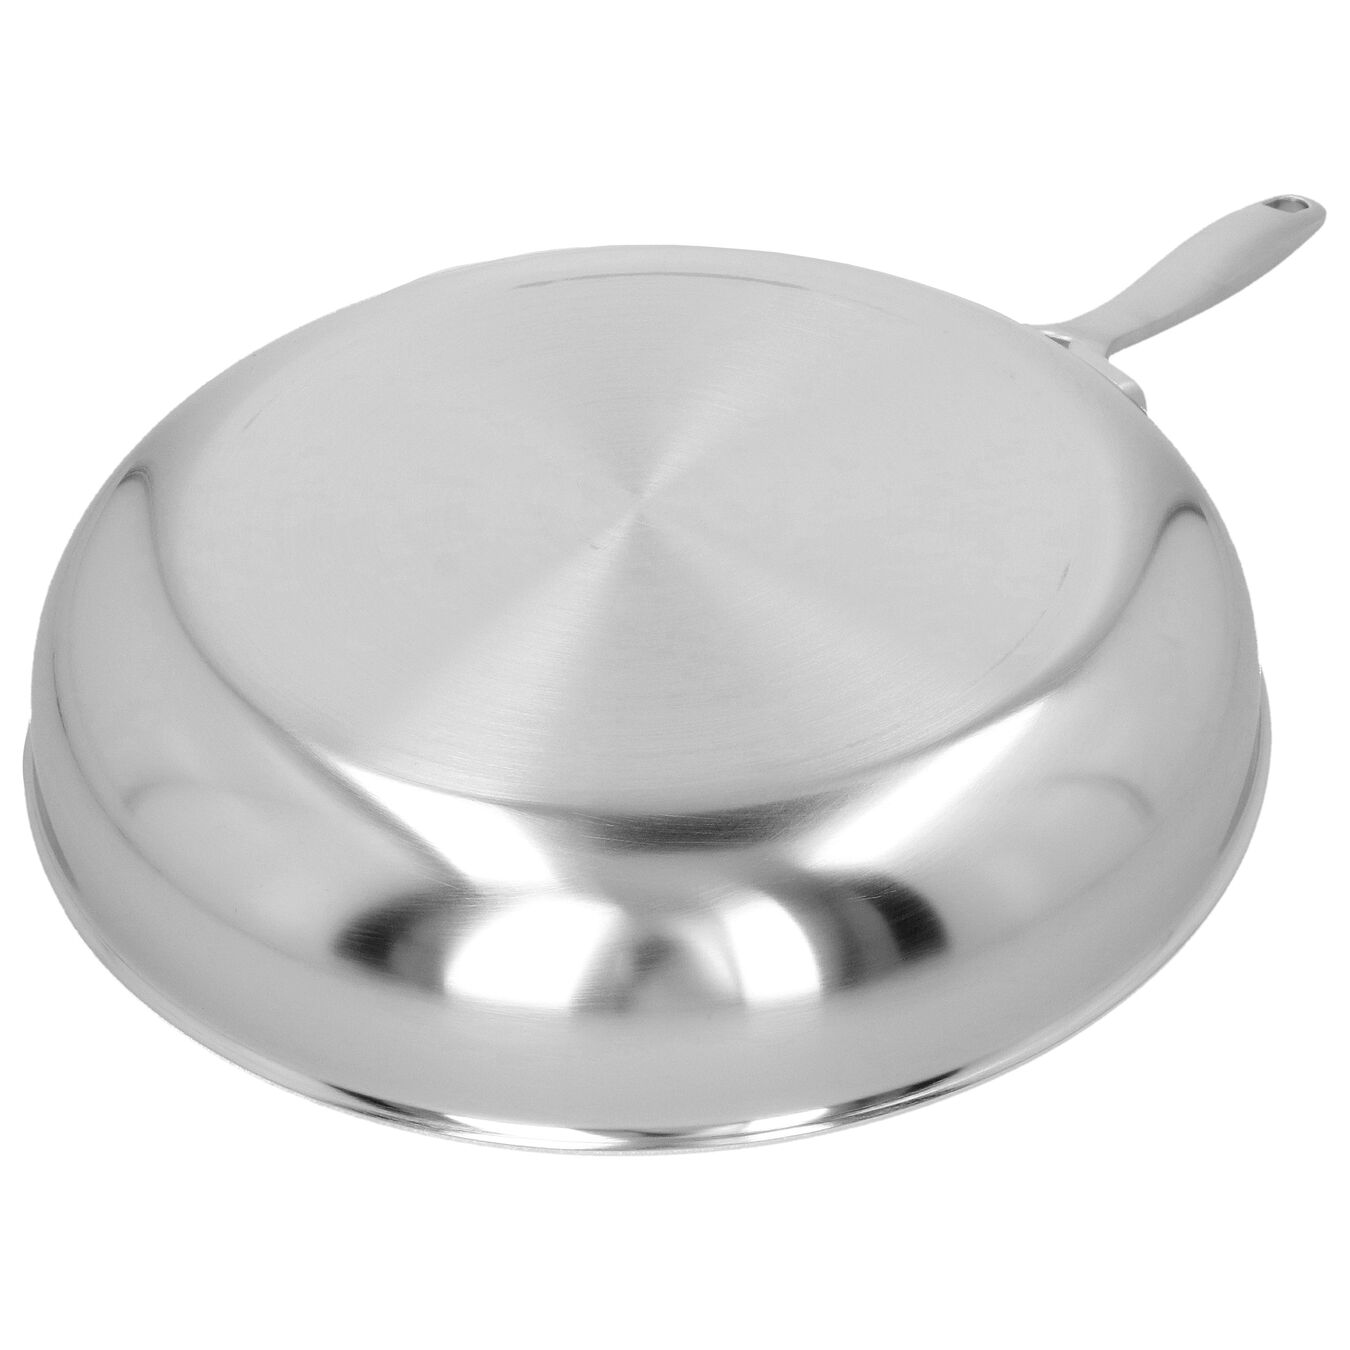 11-inch, 18/10 Stainless Steel, Frying pan,,large 2